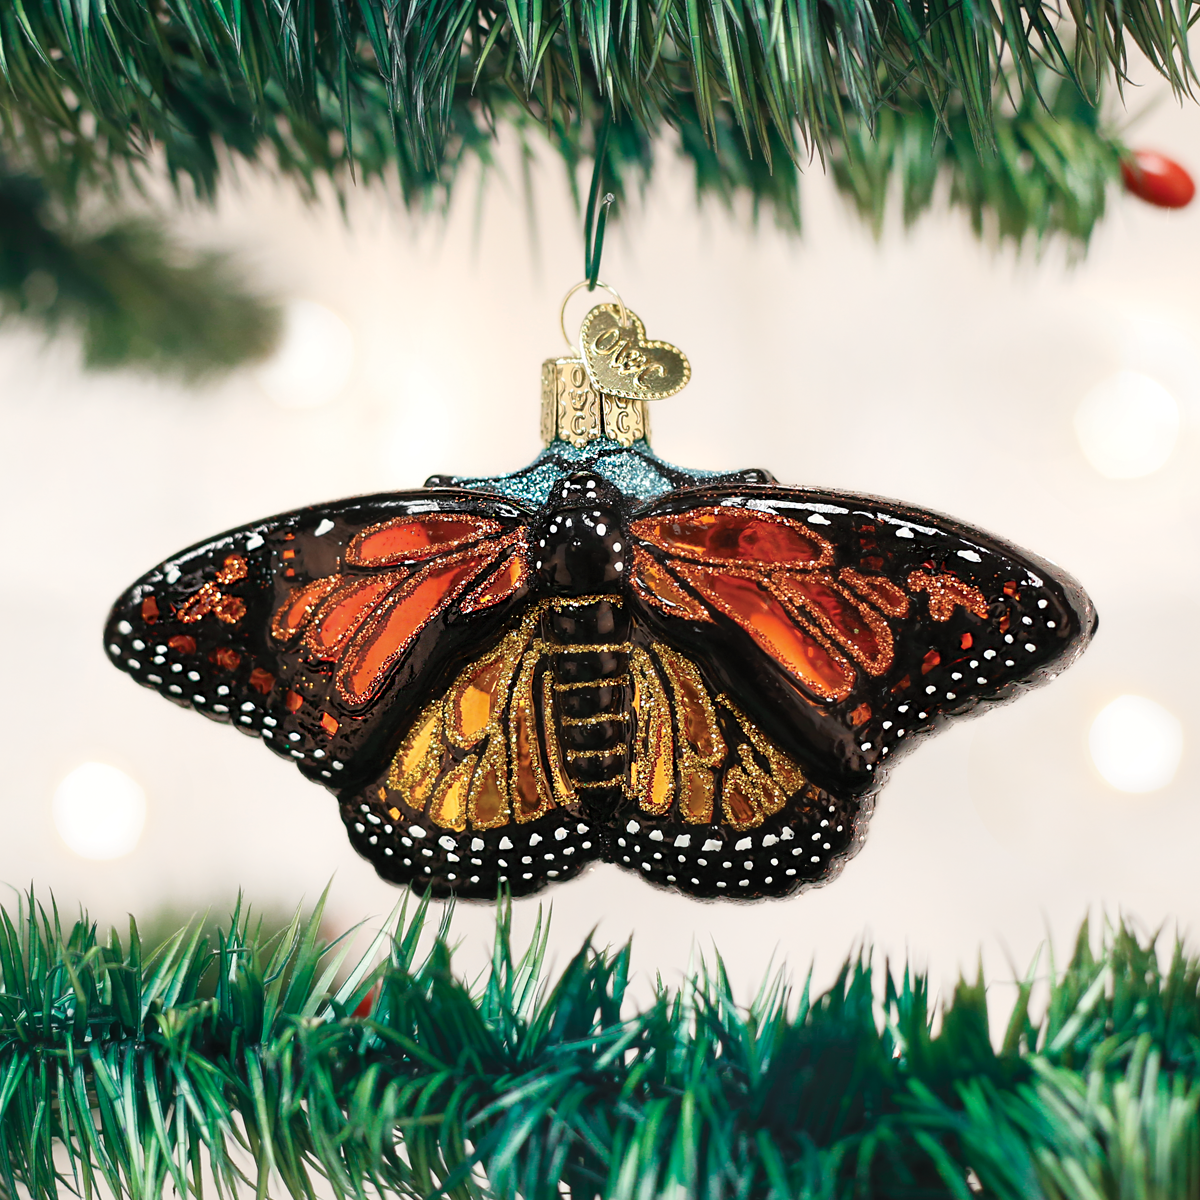 Monarch Butterfly Ornament Old World Christmas Ornaments Butterfly Ornaments Old World Christmas